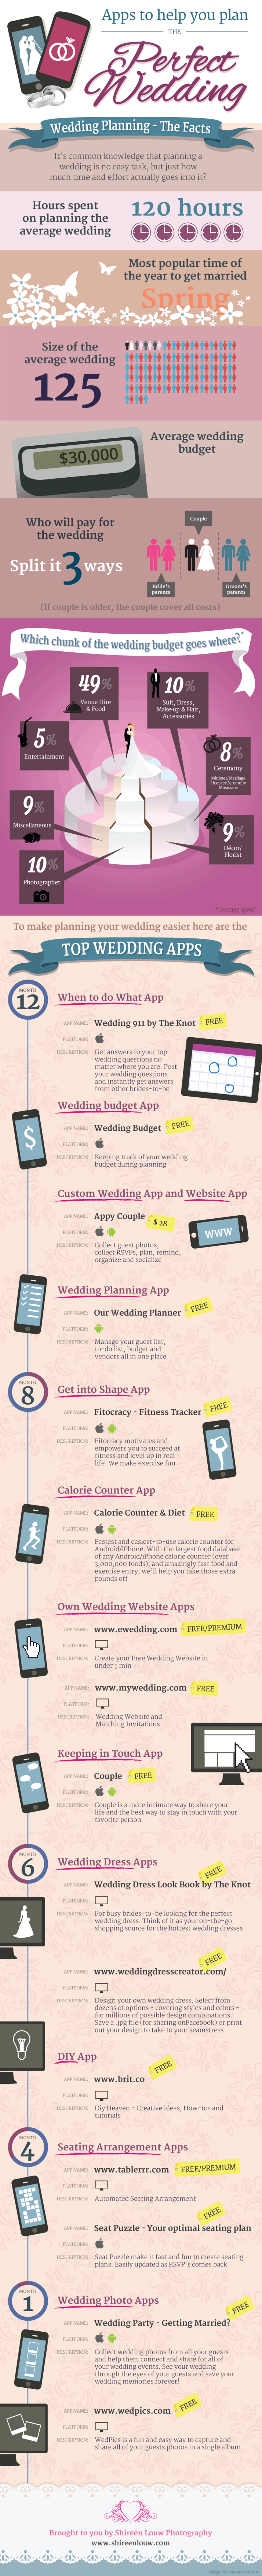 APPs to help your plzan the perfect Wedding  #infografia #infographic #software